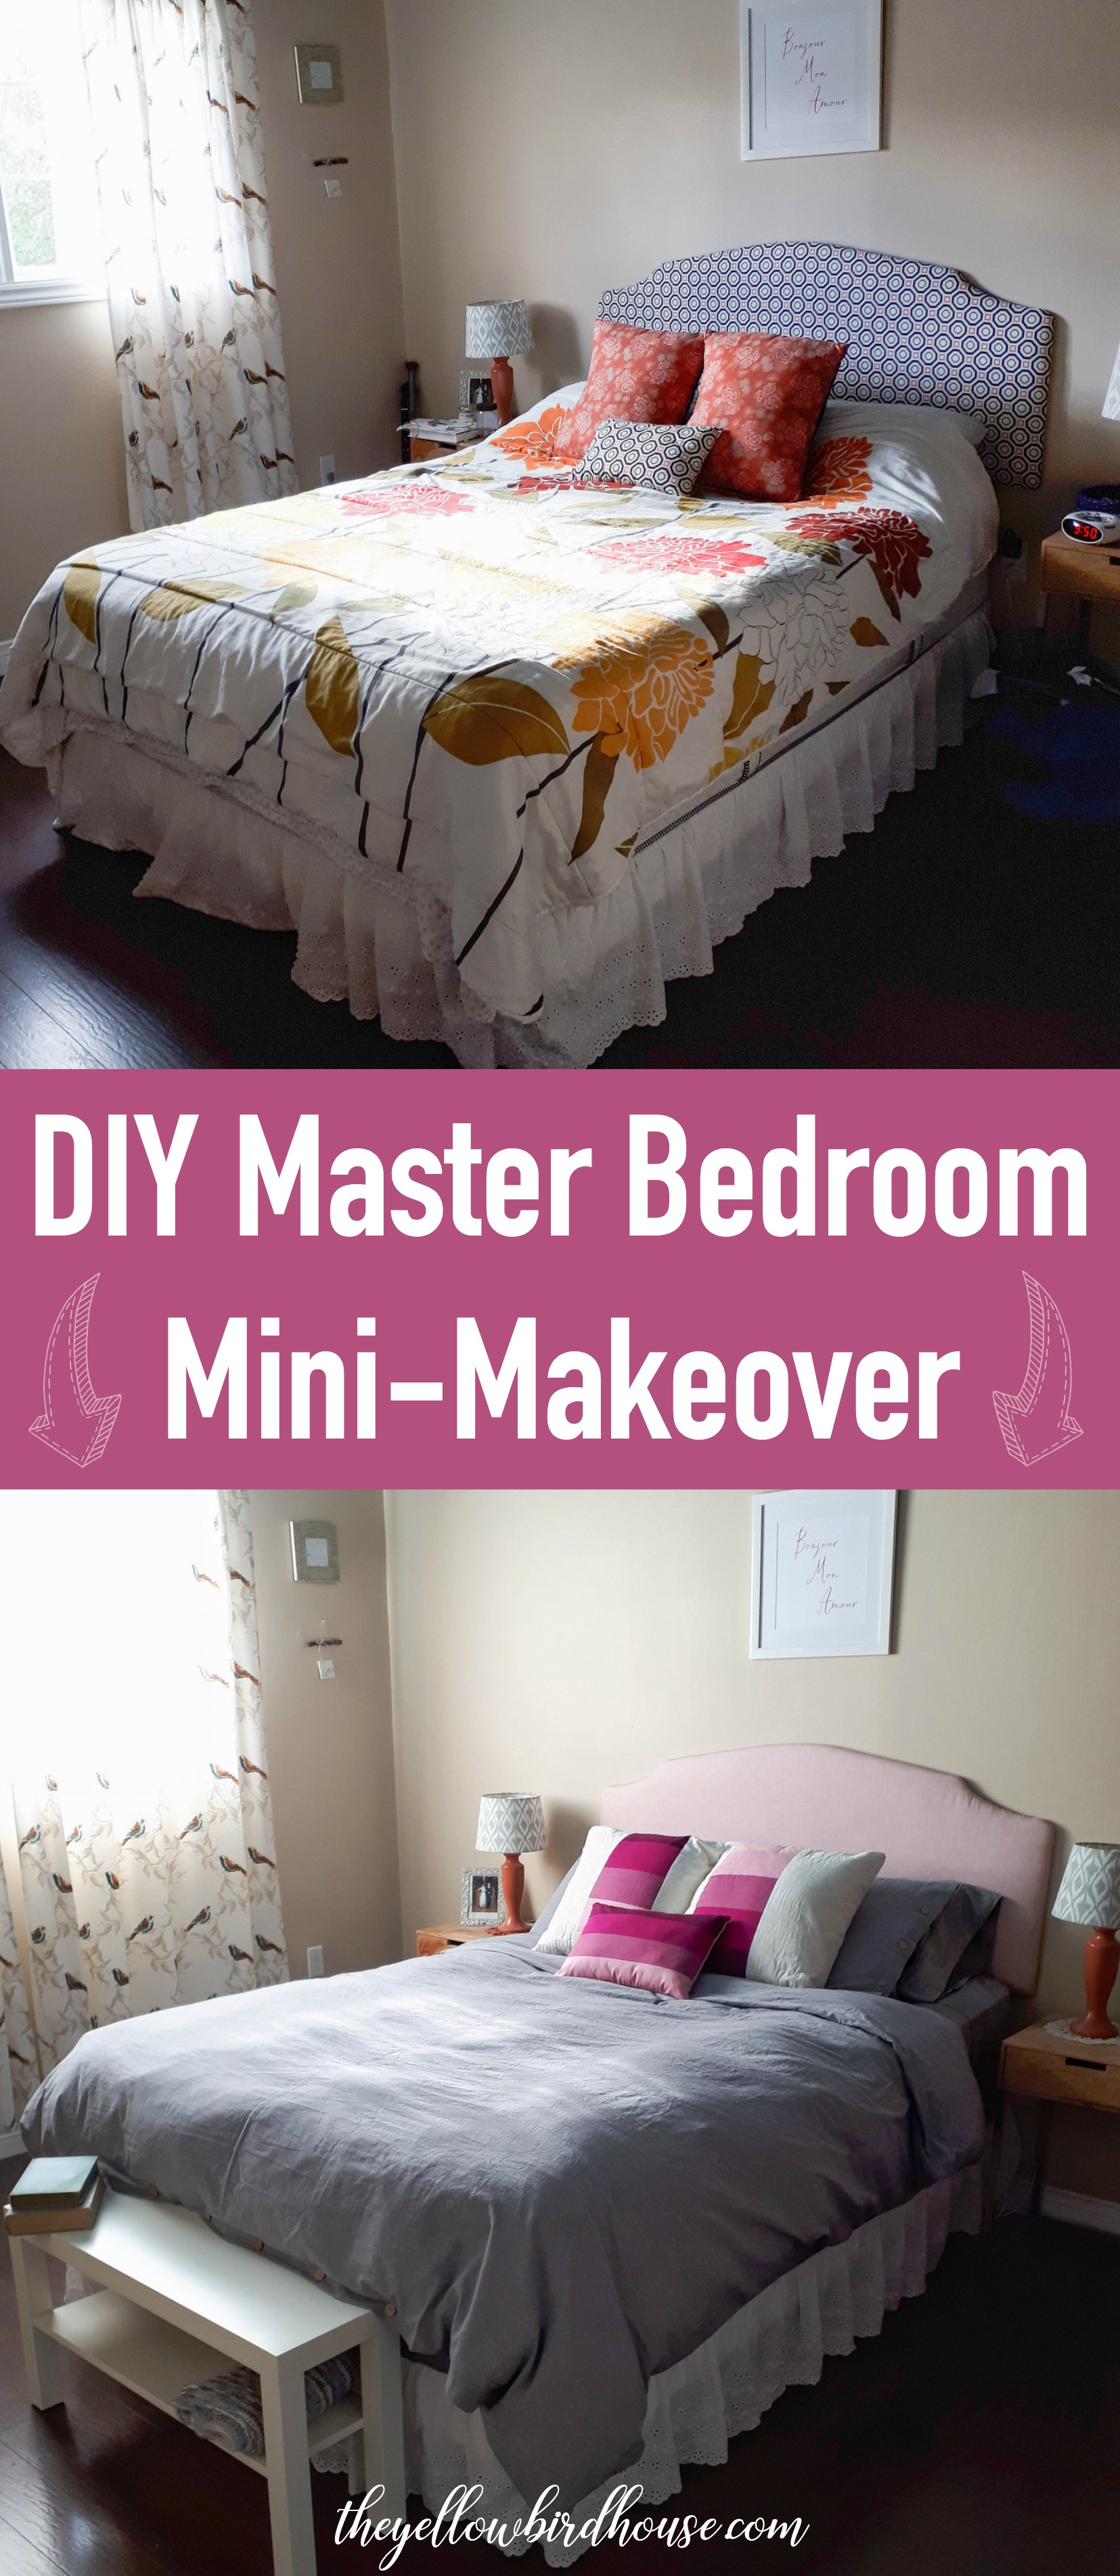 DIY Bedroom Update on a Budget! My master bedroom was in desperate need of a re-fresh. But I'm a girl on a budget with a heart for DIY! So I came up with economical ways to spruce things up and create a super cozy refuge.